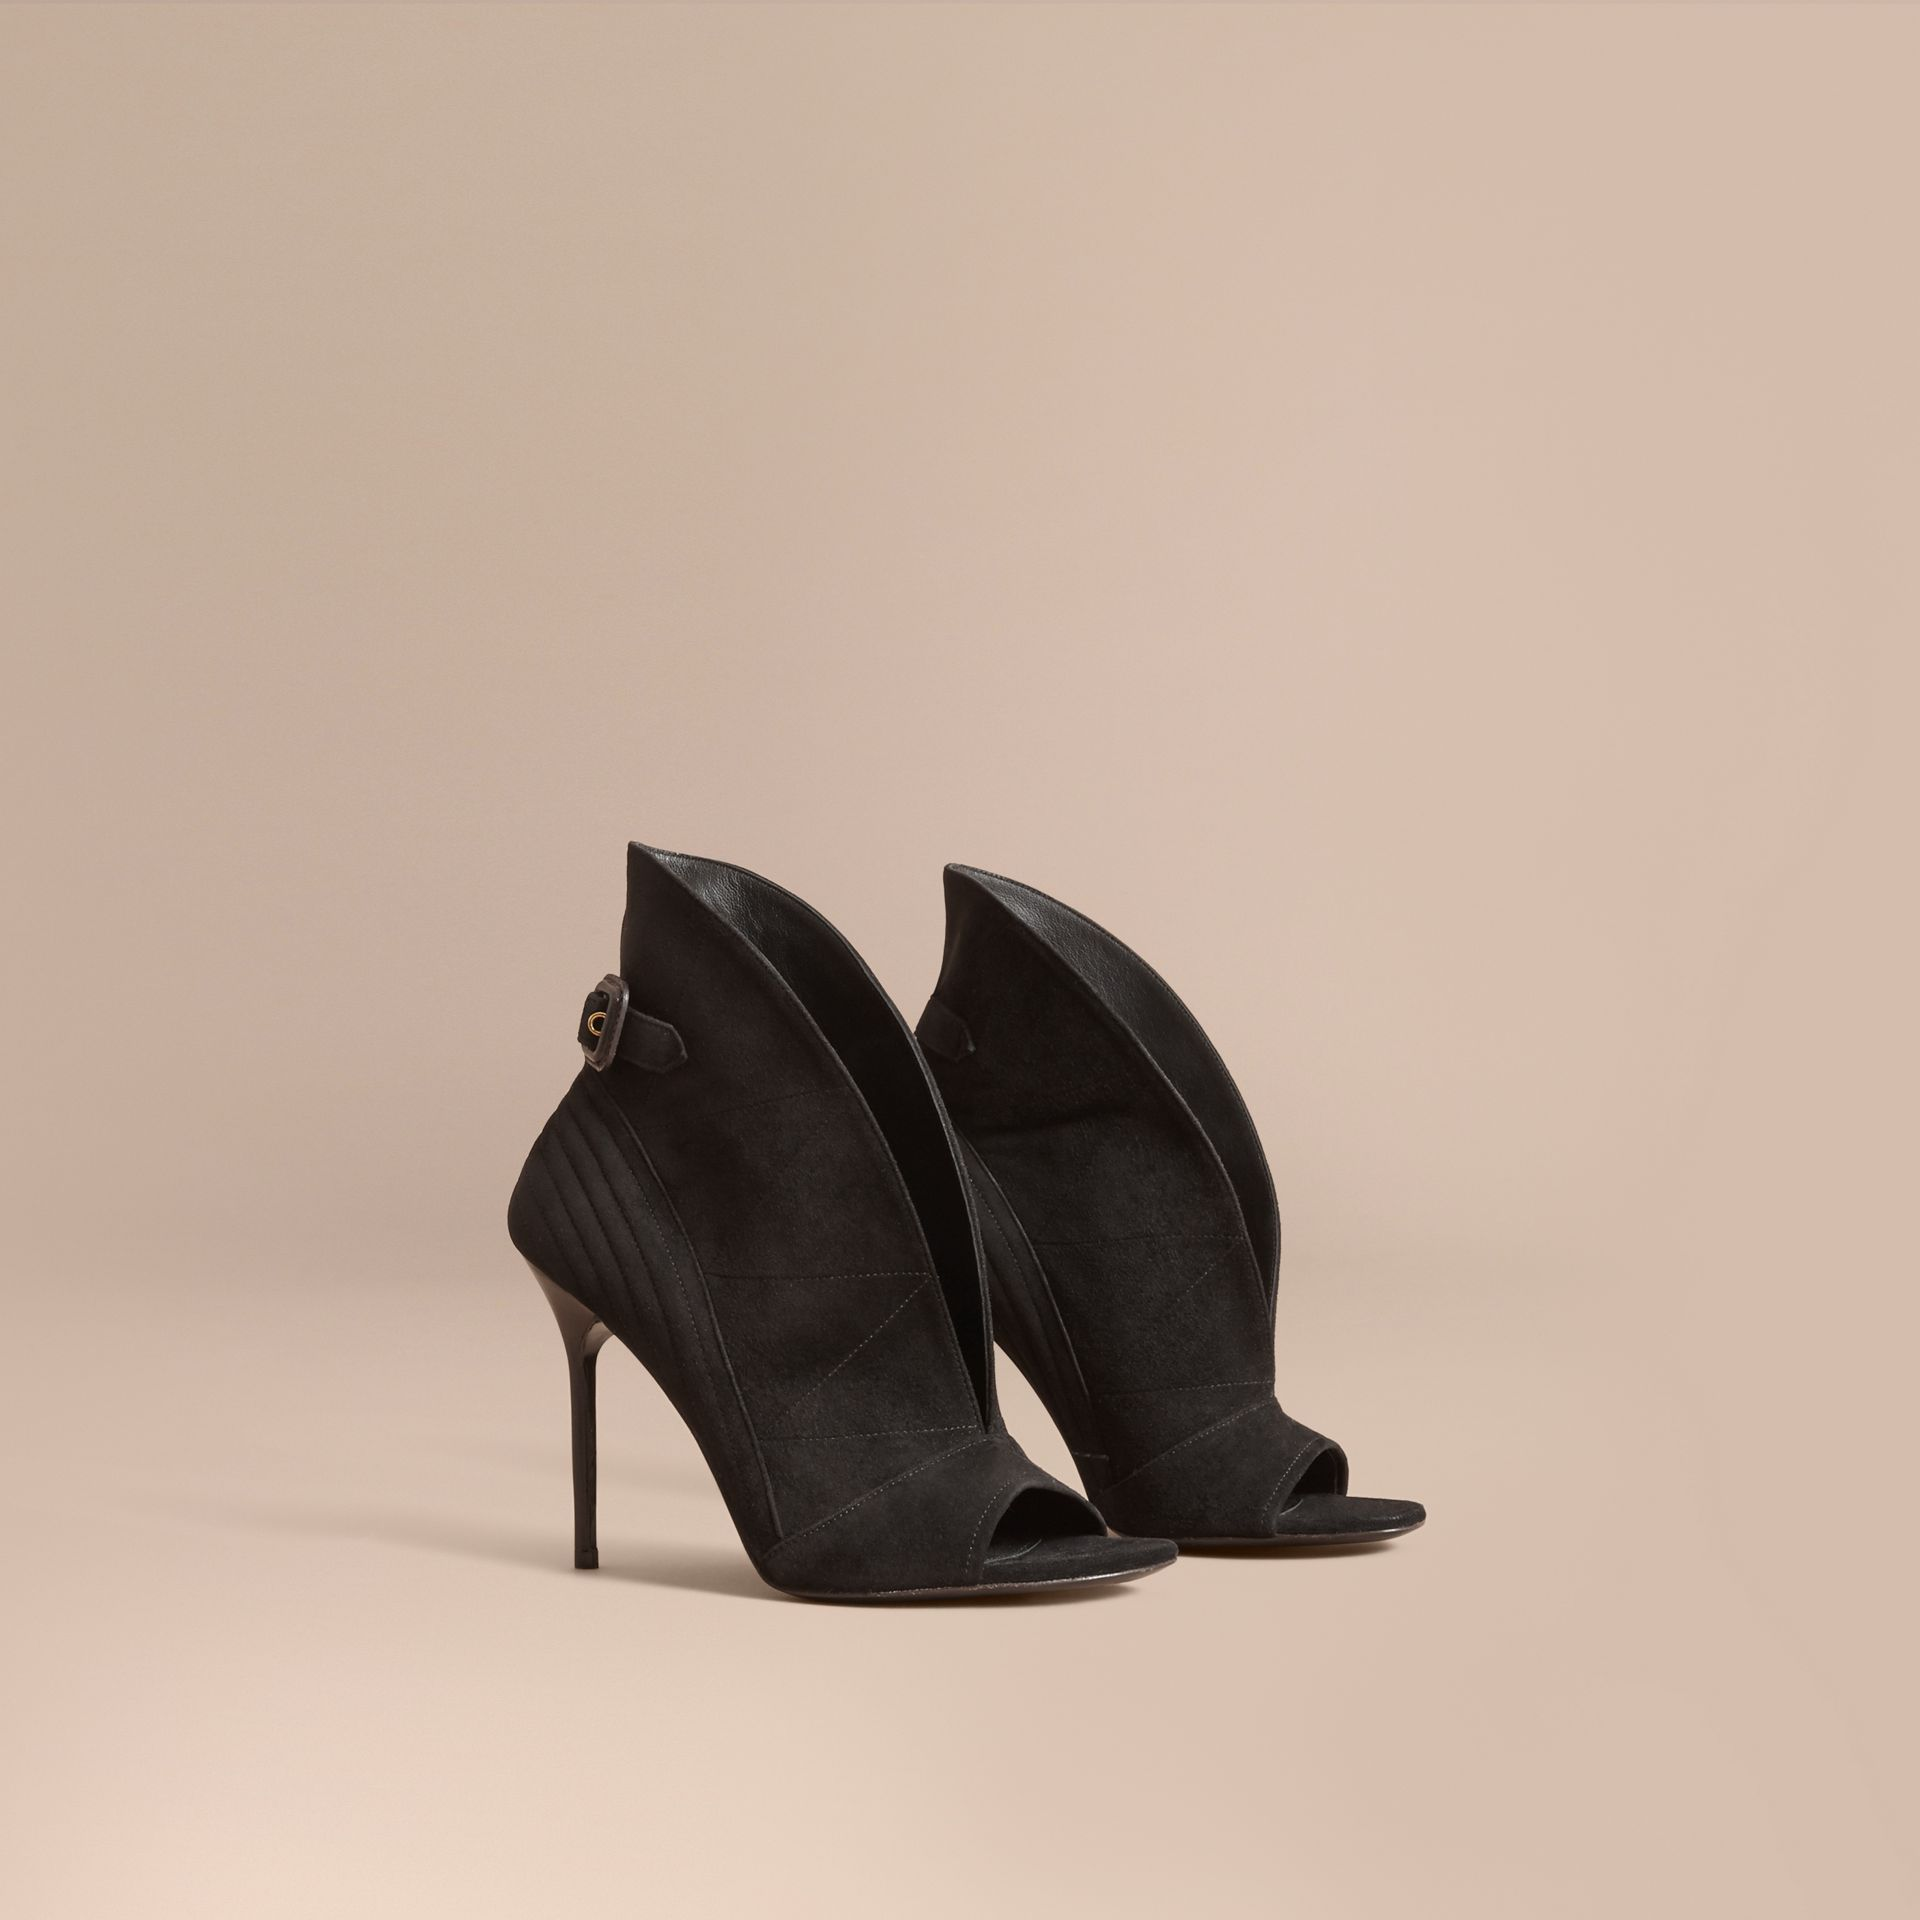 Buckle Detail Suede Peep-toe Ankle Boots in Black - Women | Burberry Australia - gallery image 1